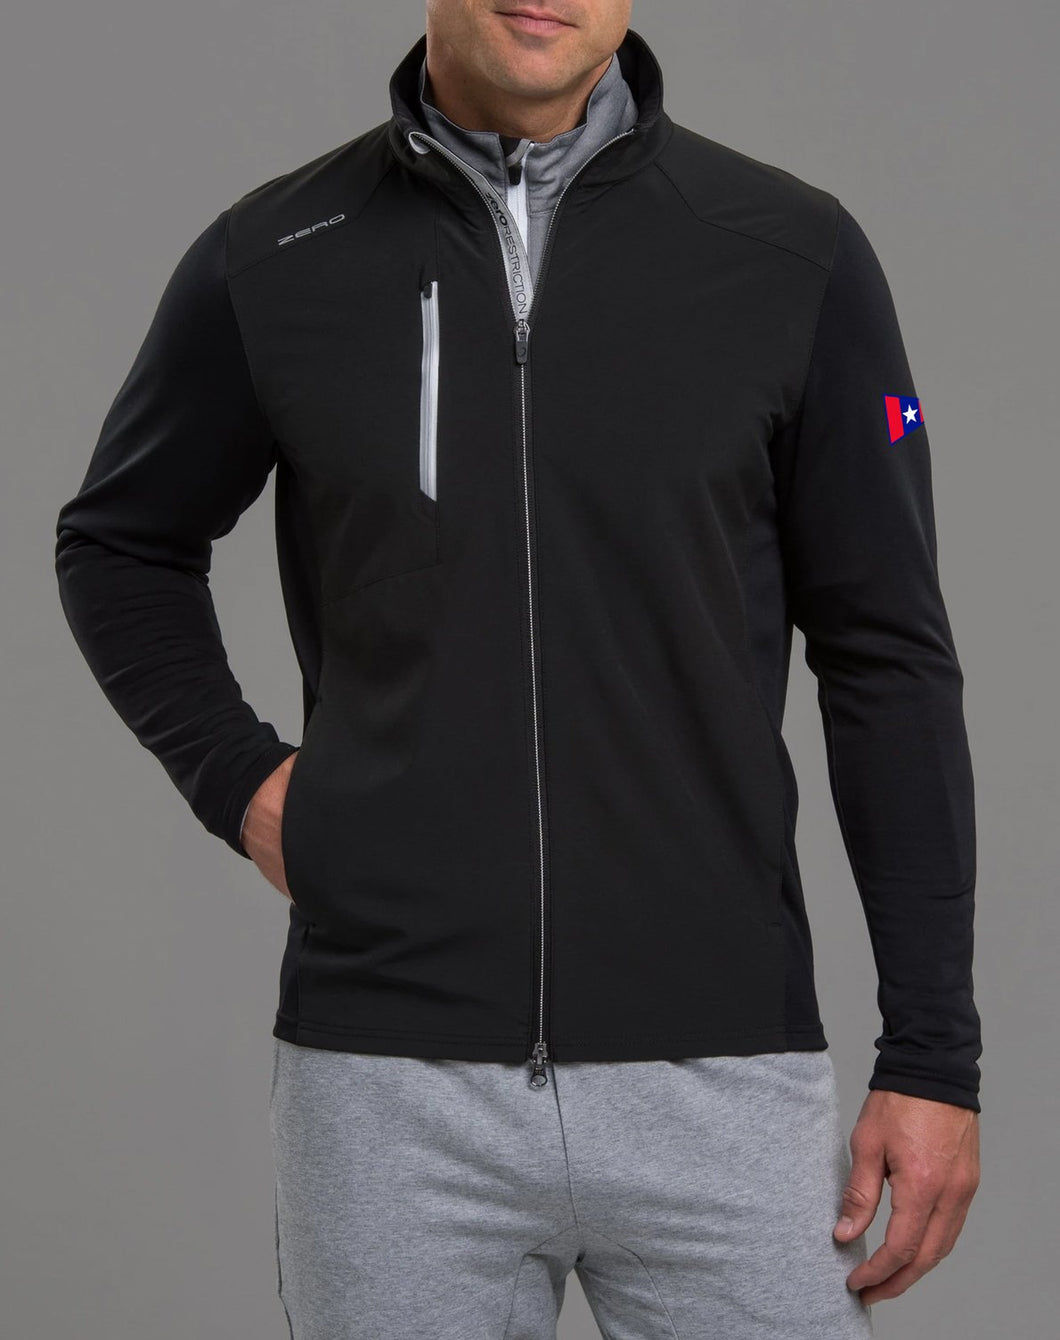 Zero Restriction Z710 Jacket